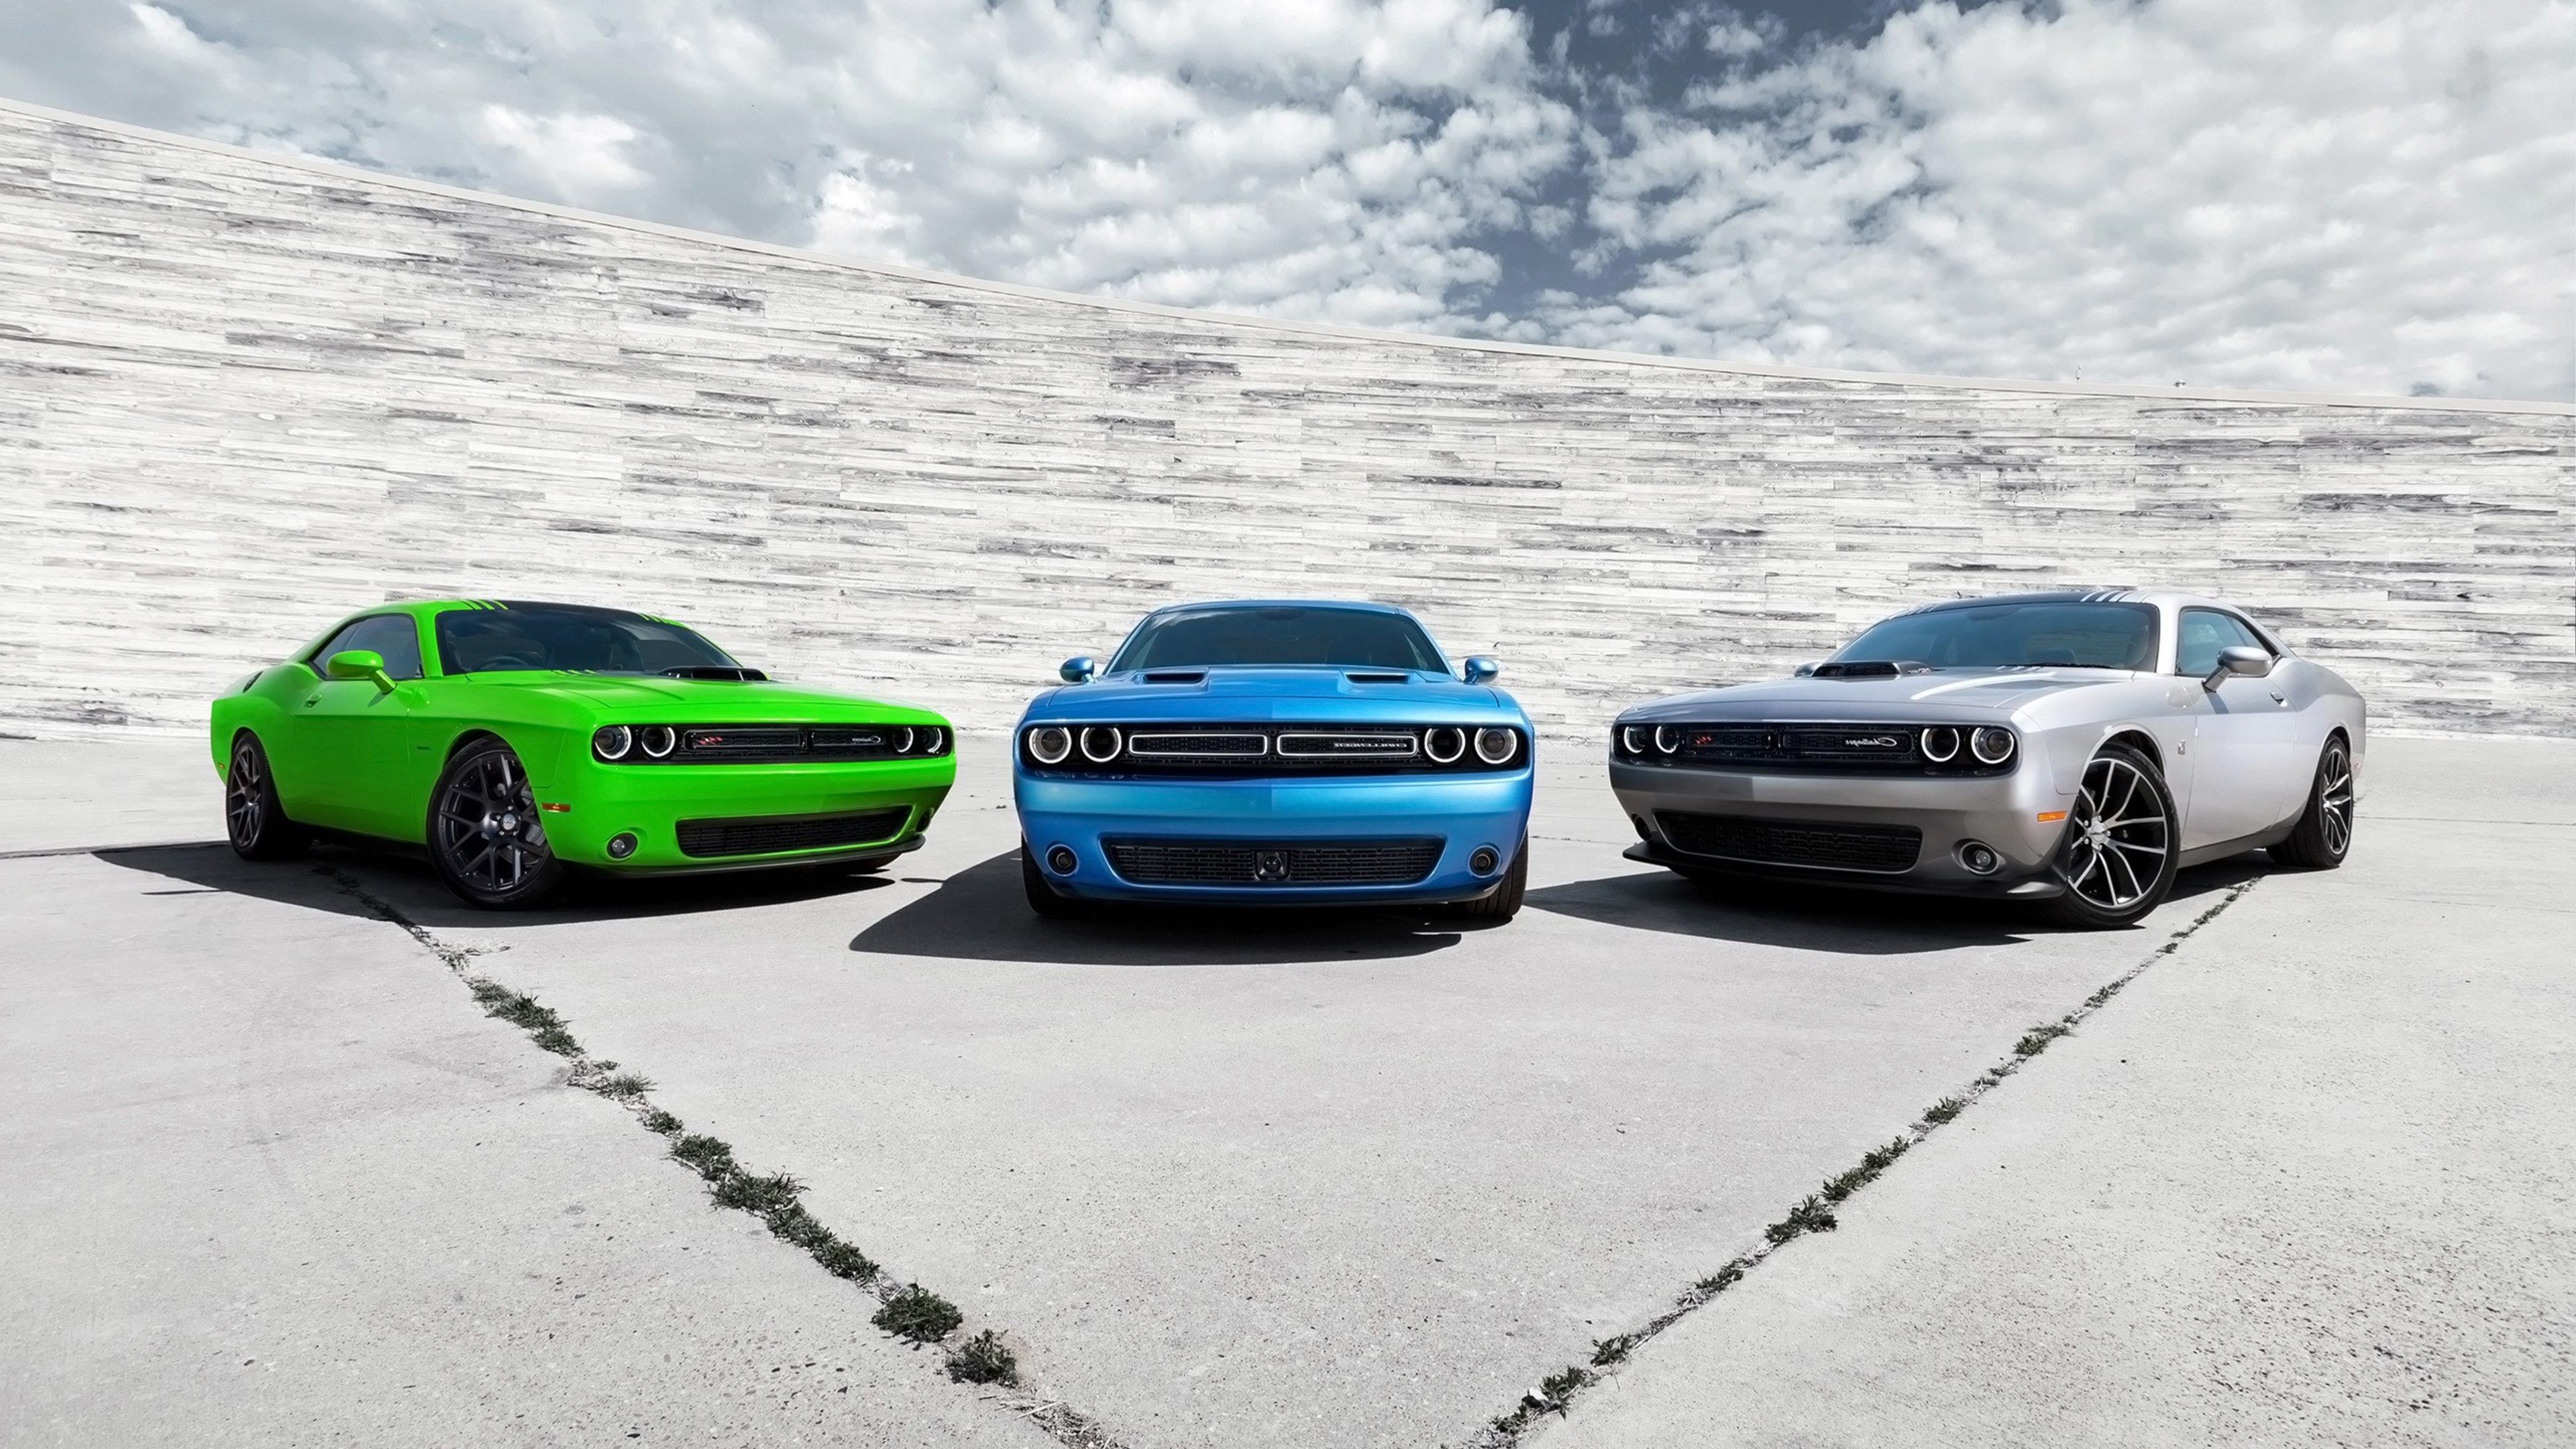 Dodge Challenger Cars Hd Cars 4k Wallpapers Images Backgrounds